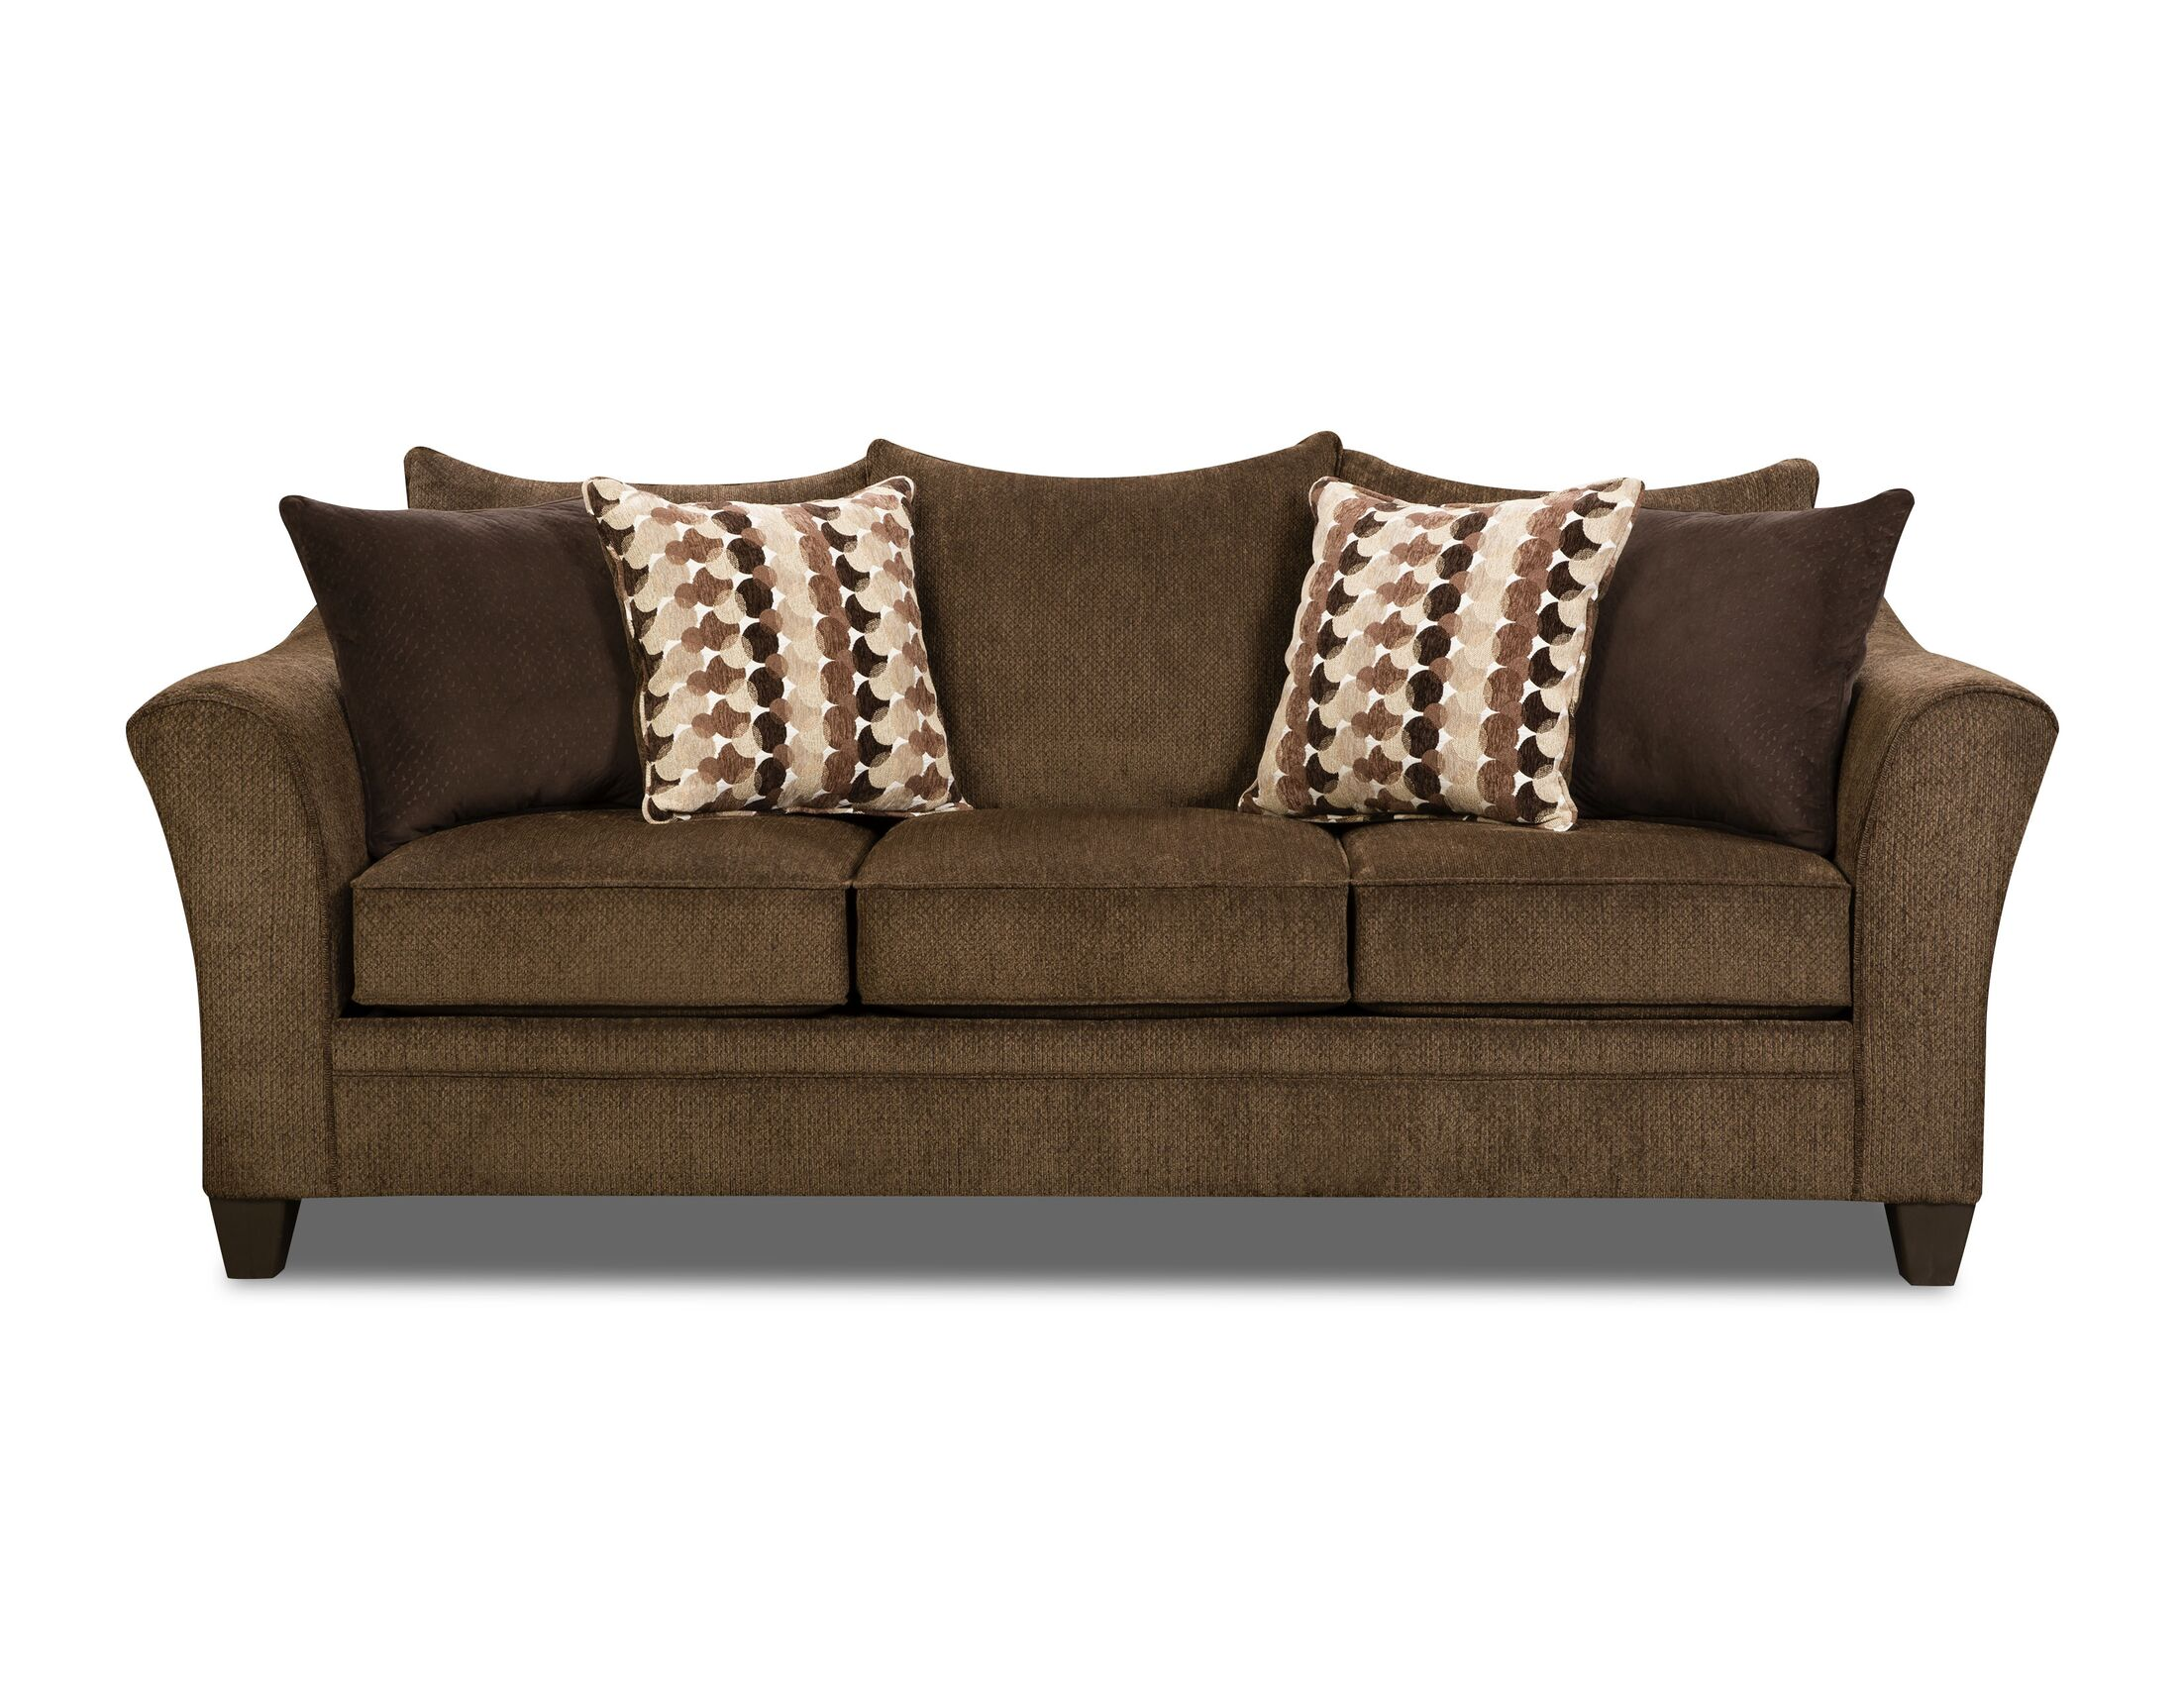 Degory Sleeper Sofa by Simmons Upholstery Upholstery: Brown